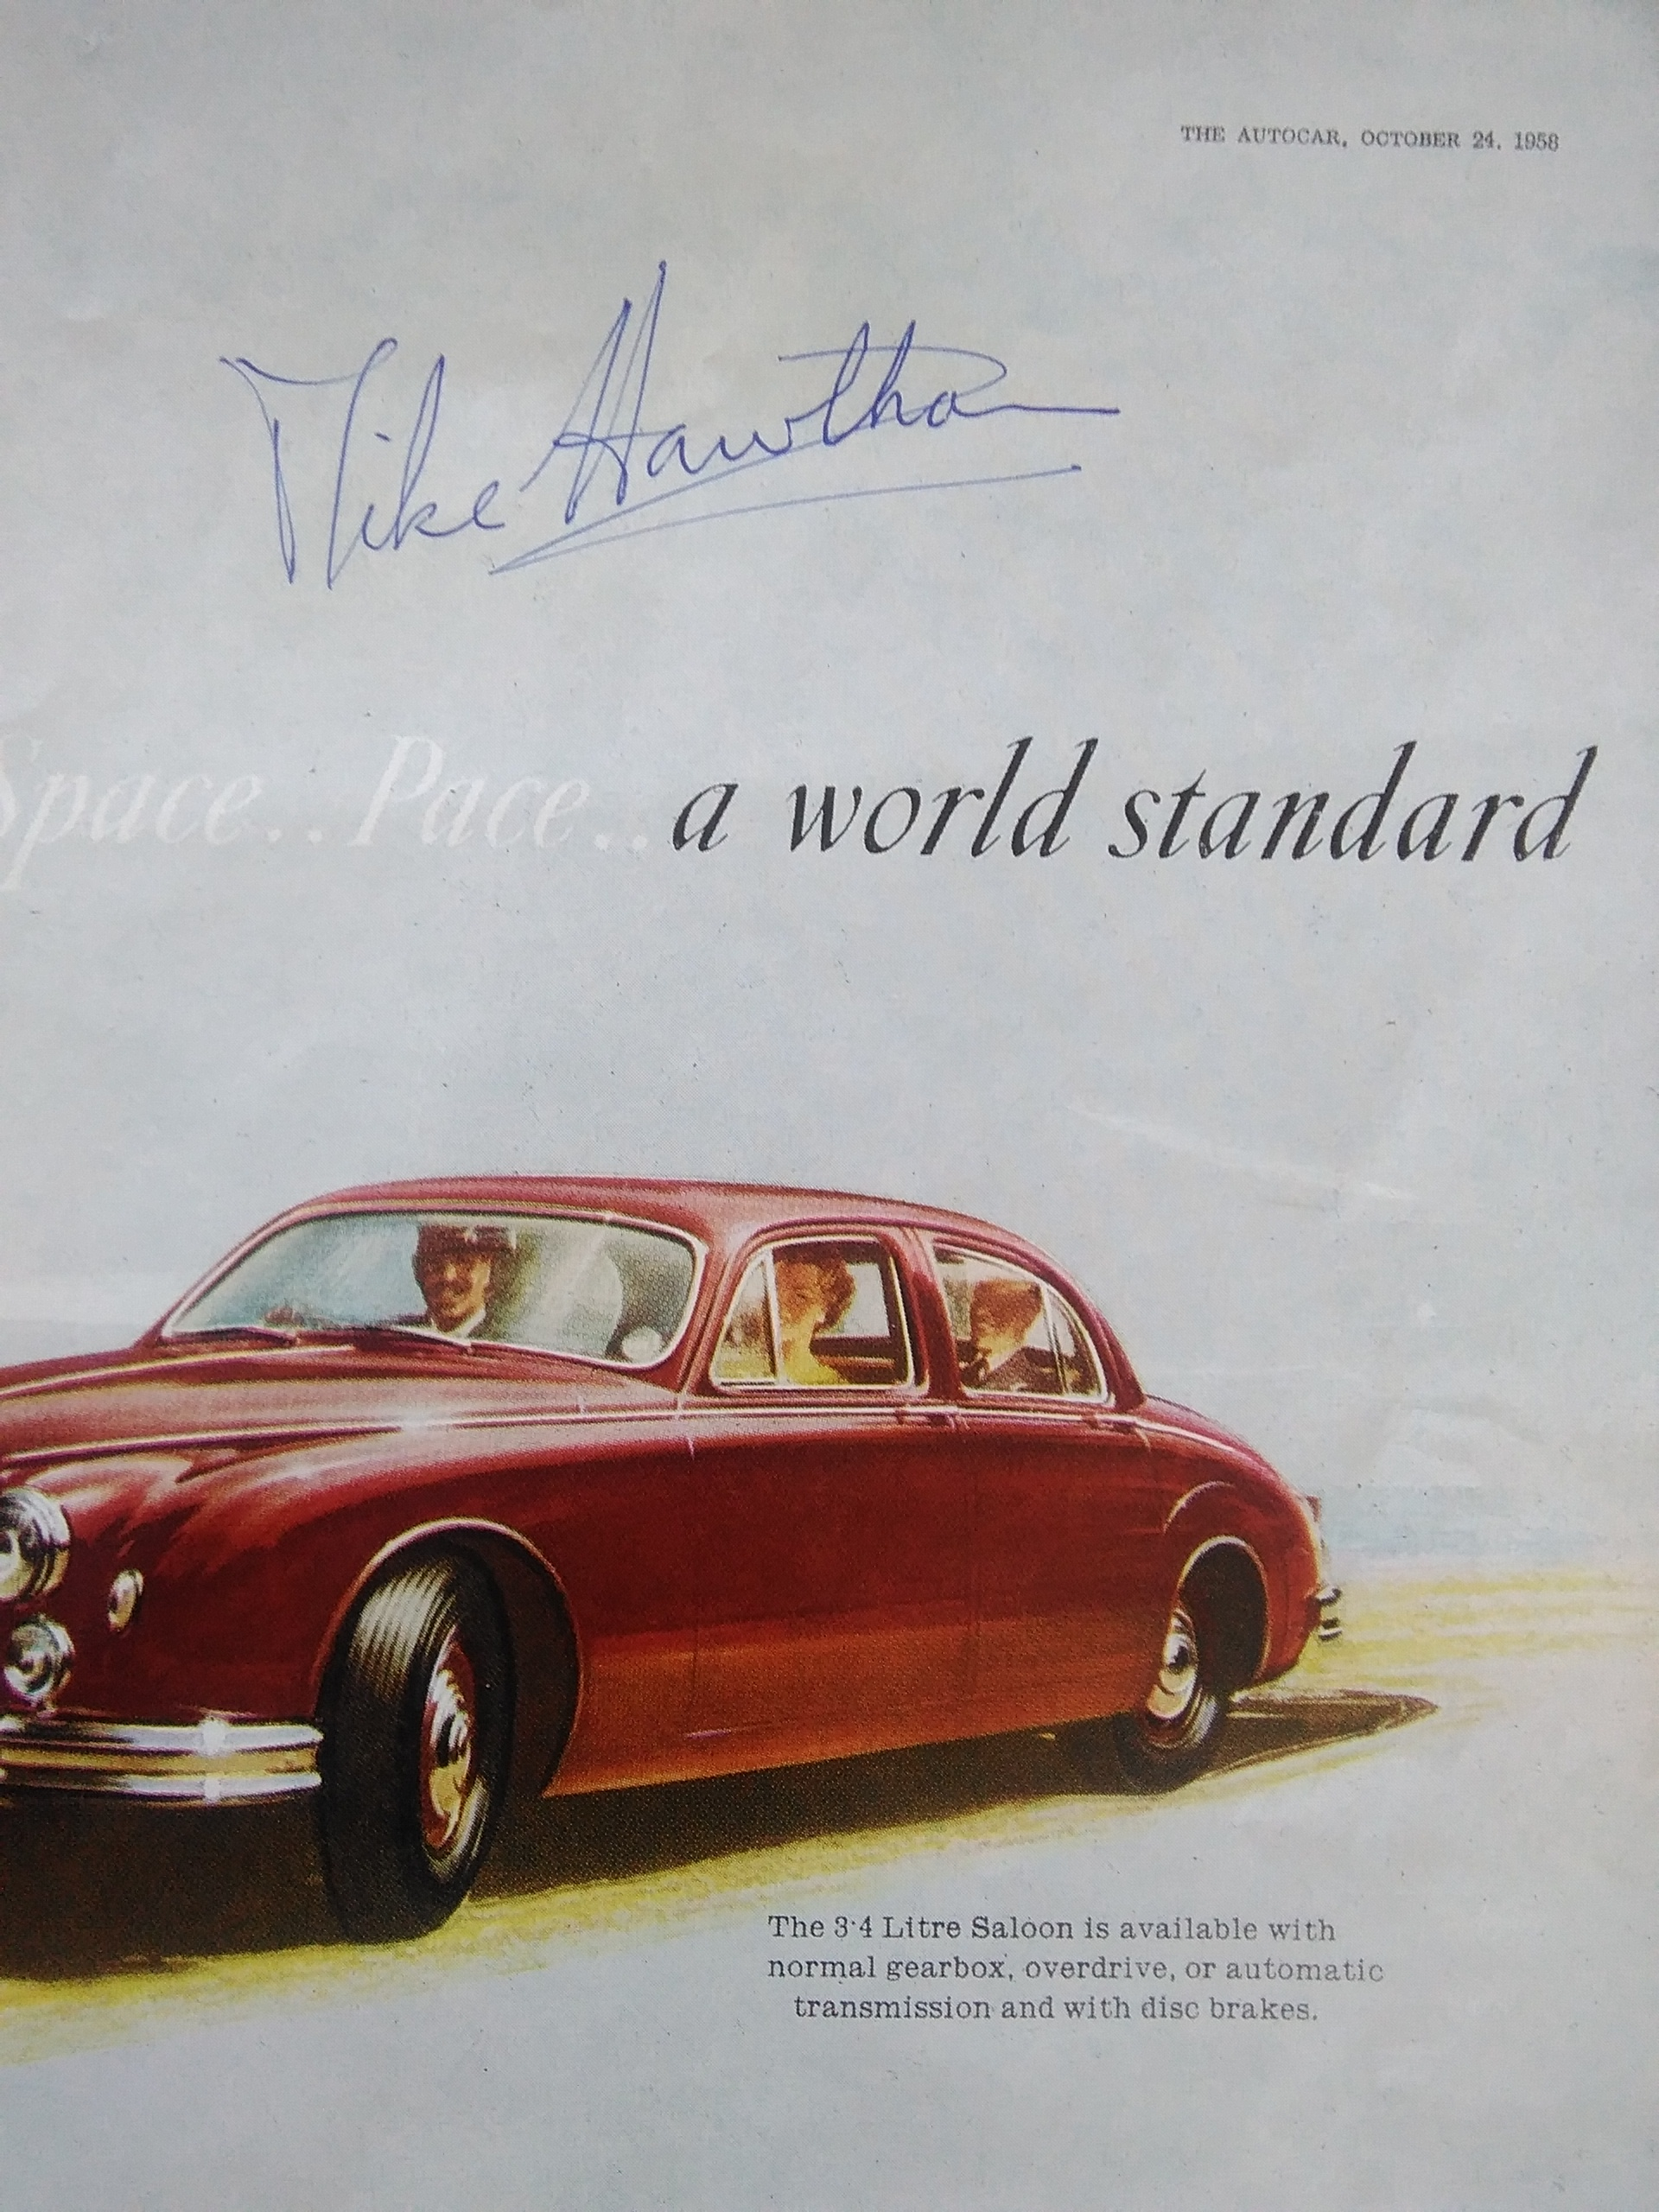 Mike Hawthorn Signed